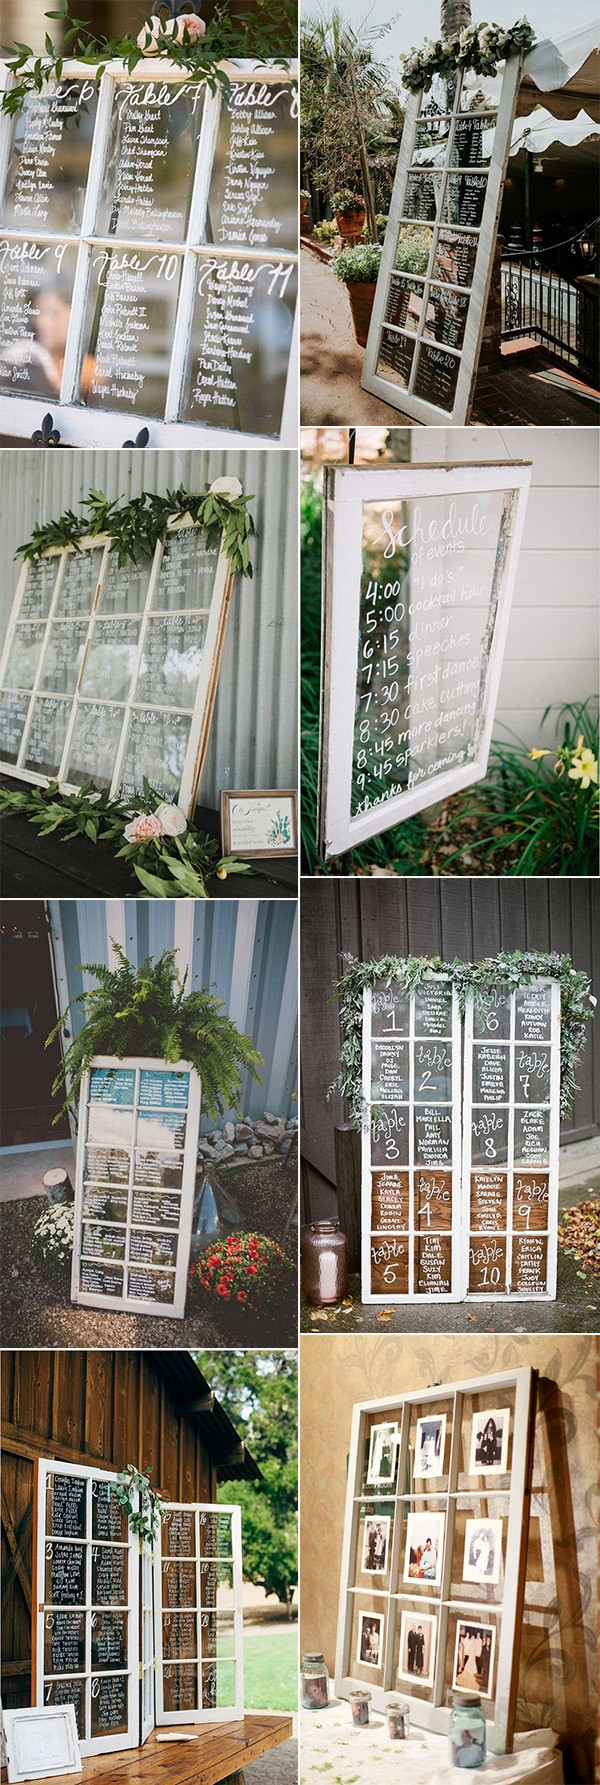 chic rustic calligraphy wedding sign ideas with vintage windows